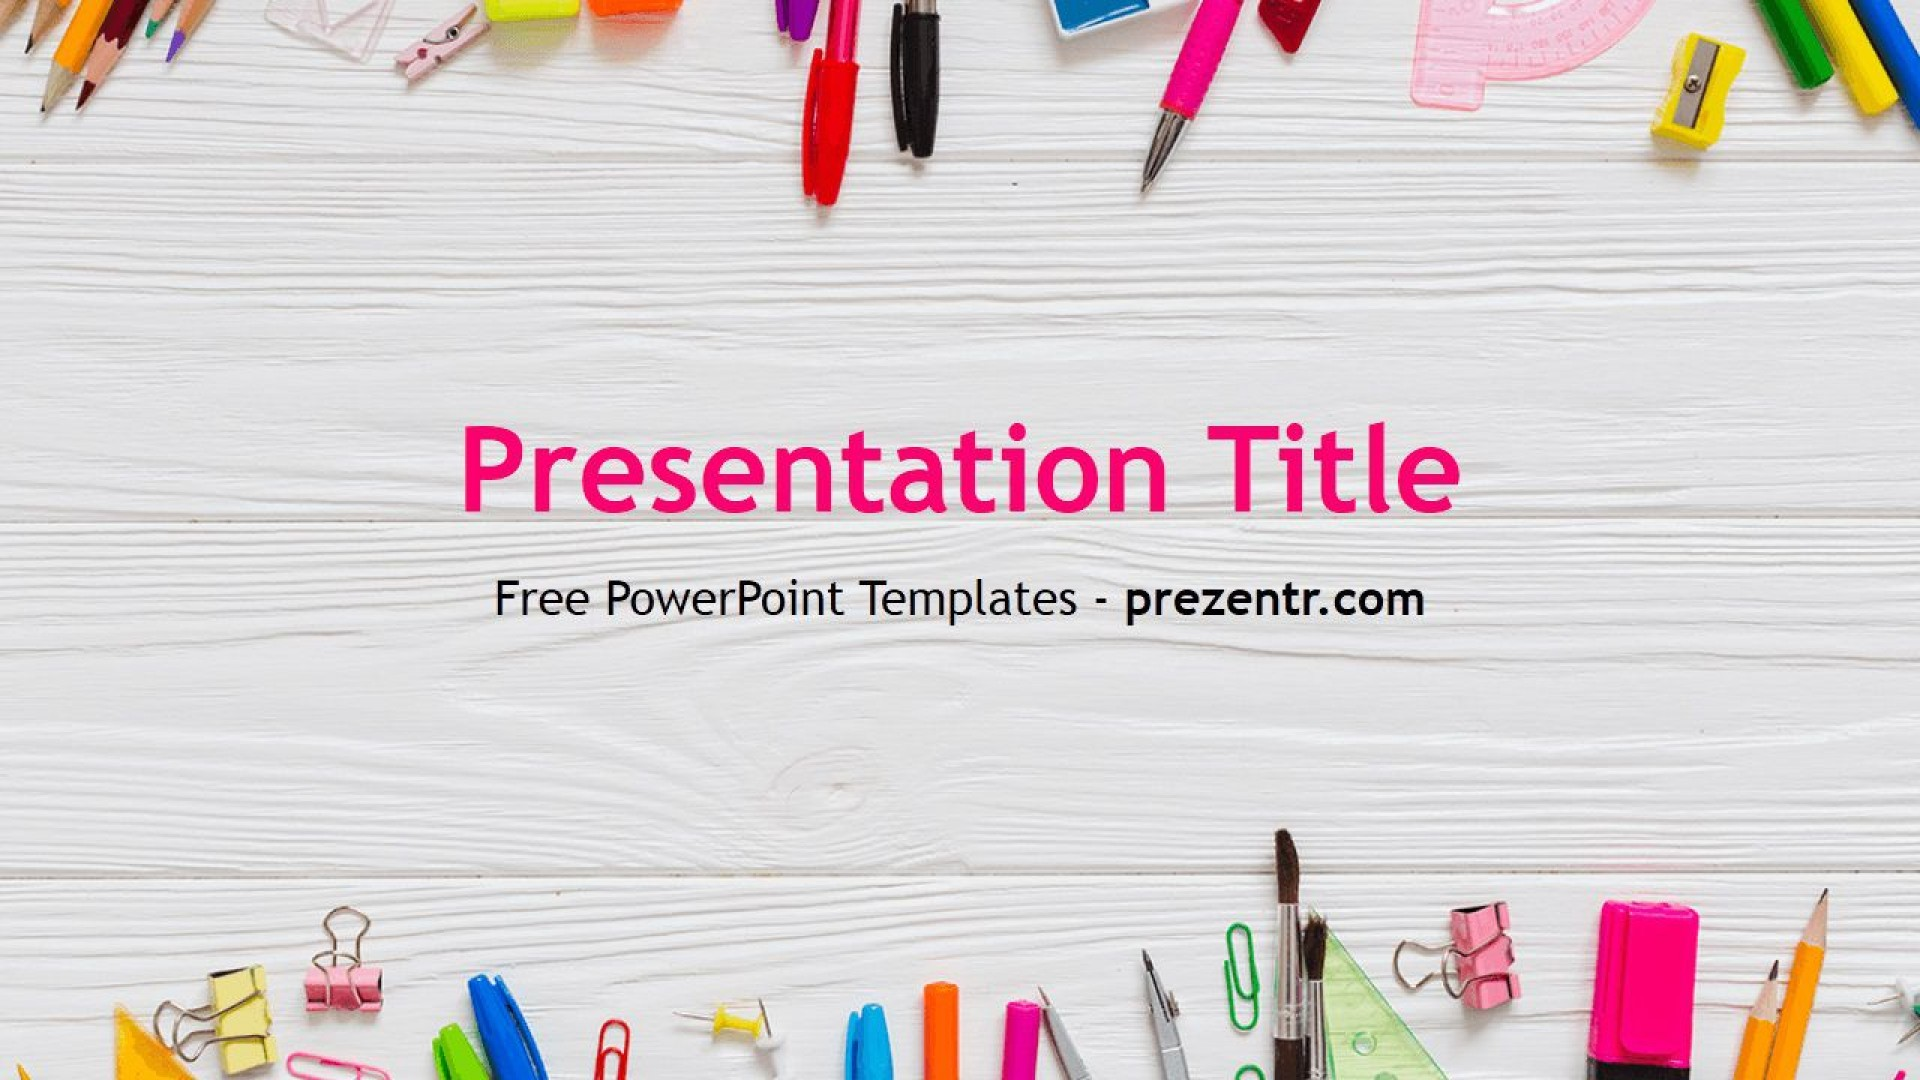 009 Remarkable Free Education Powerpoint Template Highest Clarity  Templates Physical Download Downloadable For Teacher Design1920